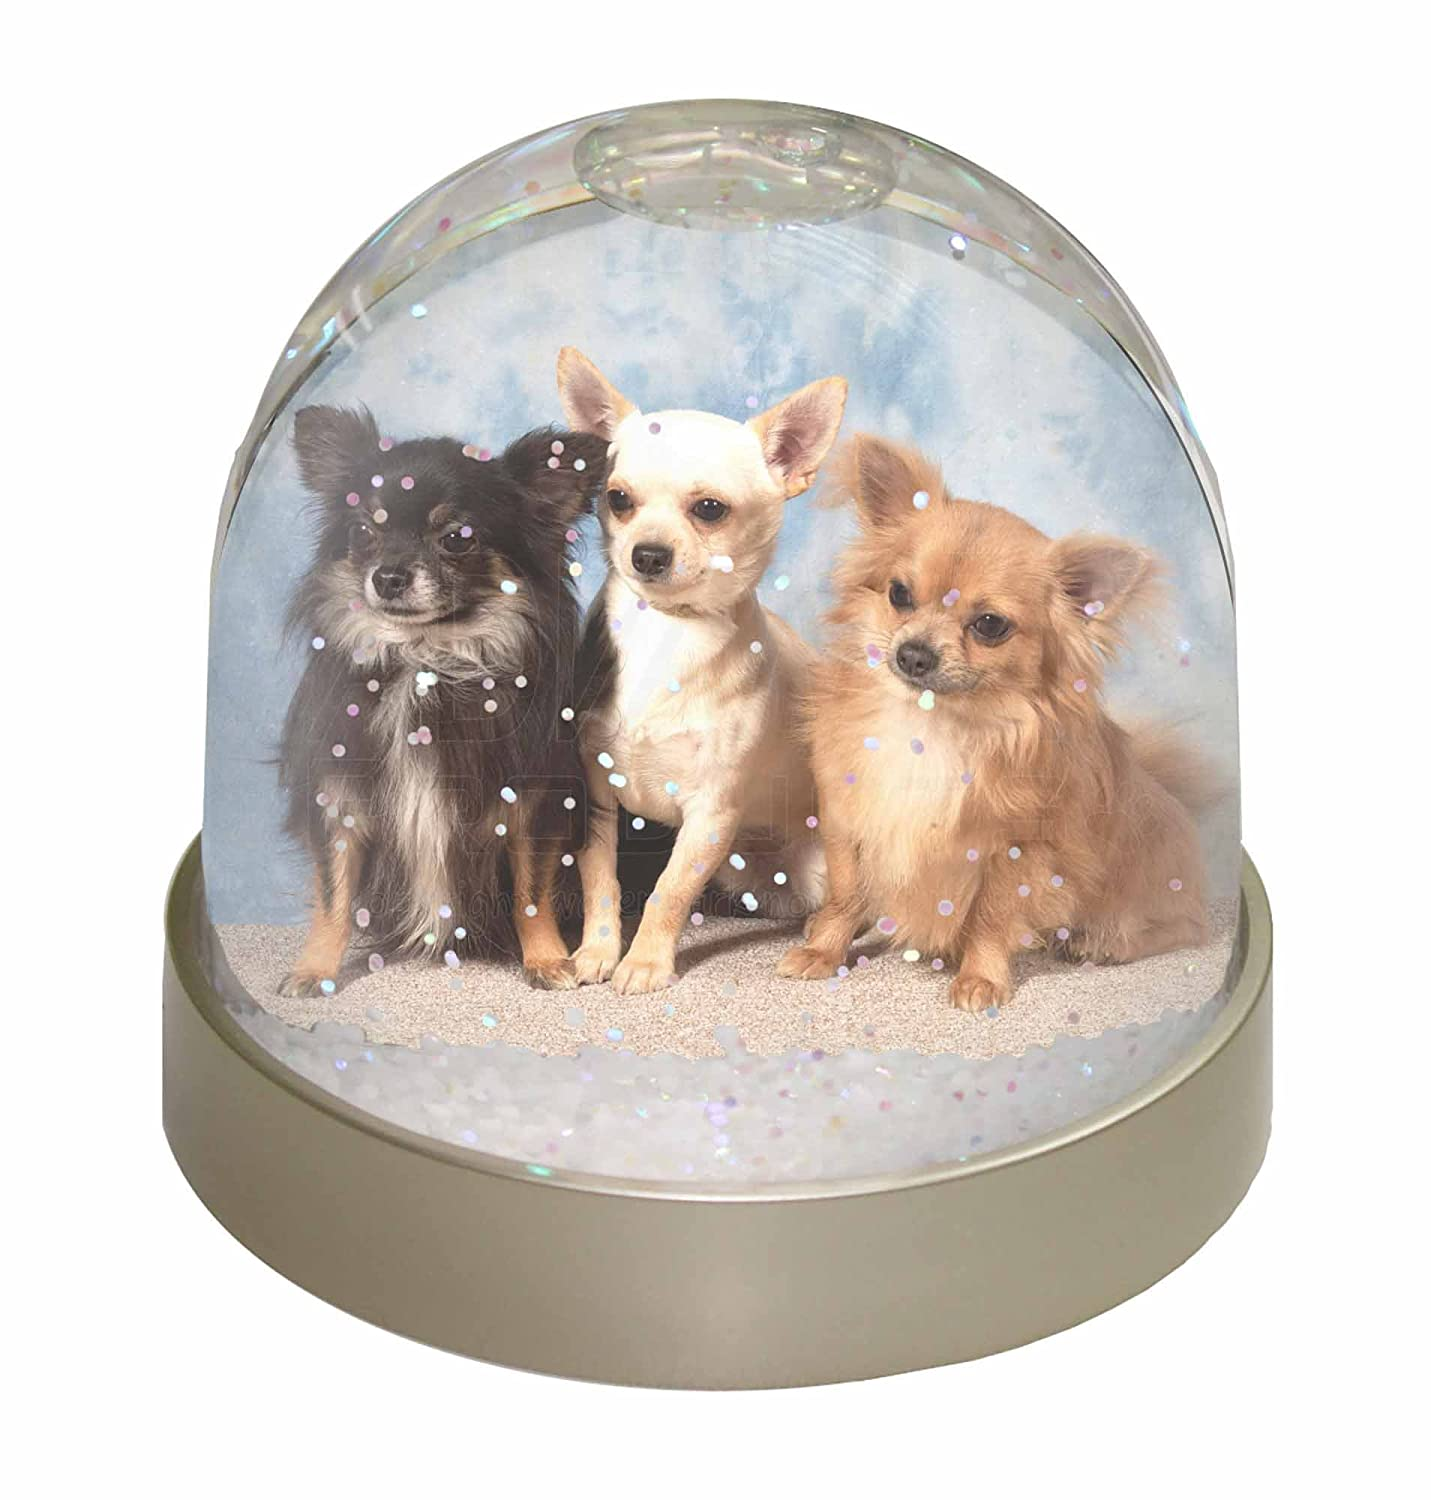 Advanta Chihuahua Snow Dome Globe Waterball Gift, Multi-Colour, 9.2 x 9.2 x 8 cm Advanta Products AD-CH1GL